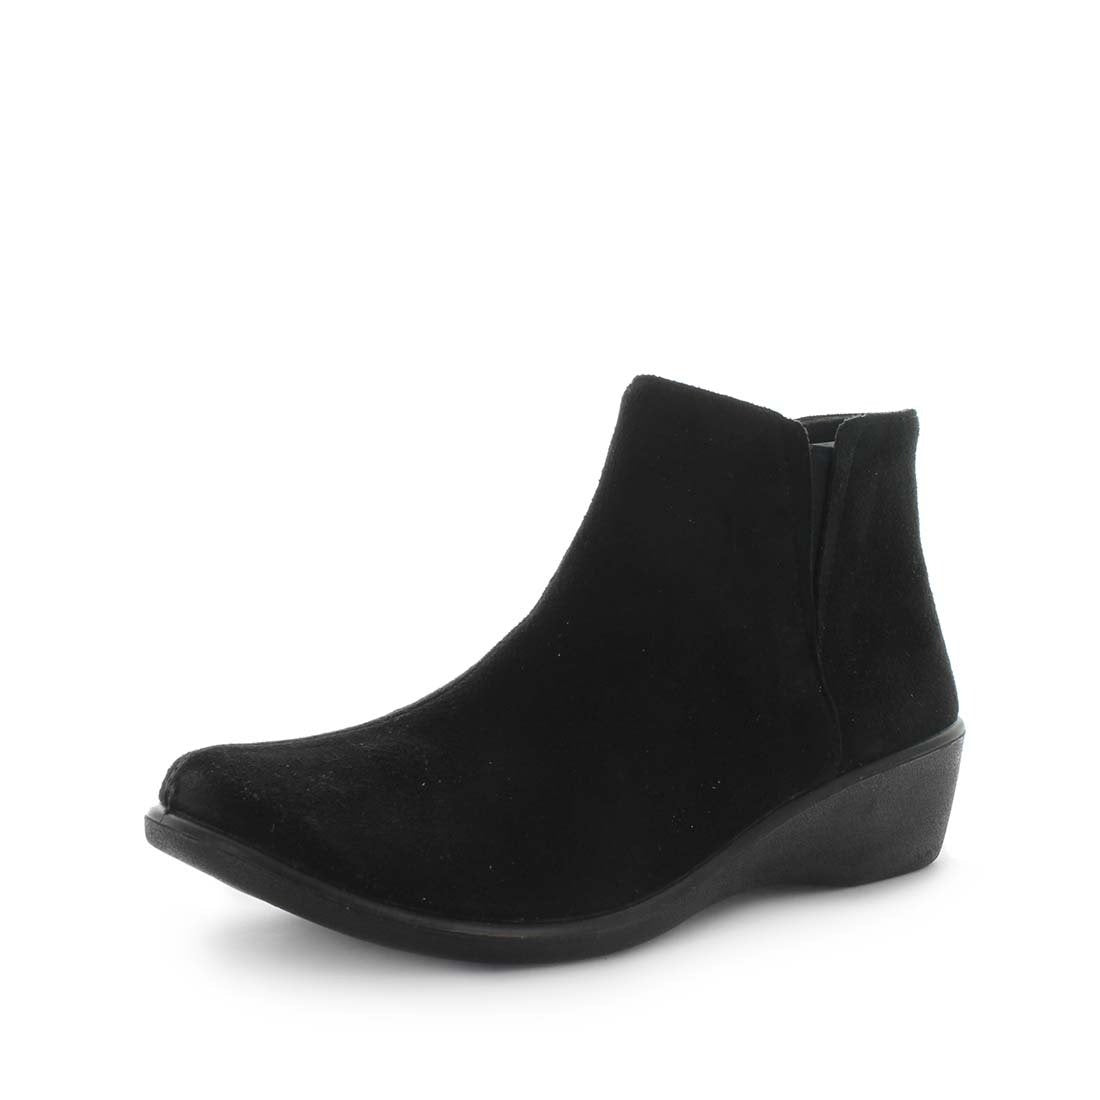 MIST by AEROCUSHION - iShoes - What's New, What's New: Women's New Arrivals, Women's Shoes, Women's Shoes: Boots - FOOTWEAR-FOOTWEAR